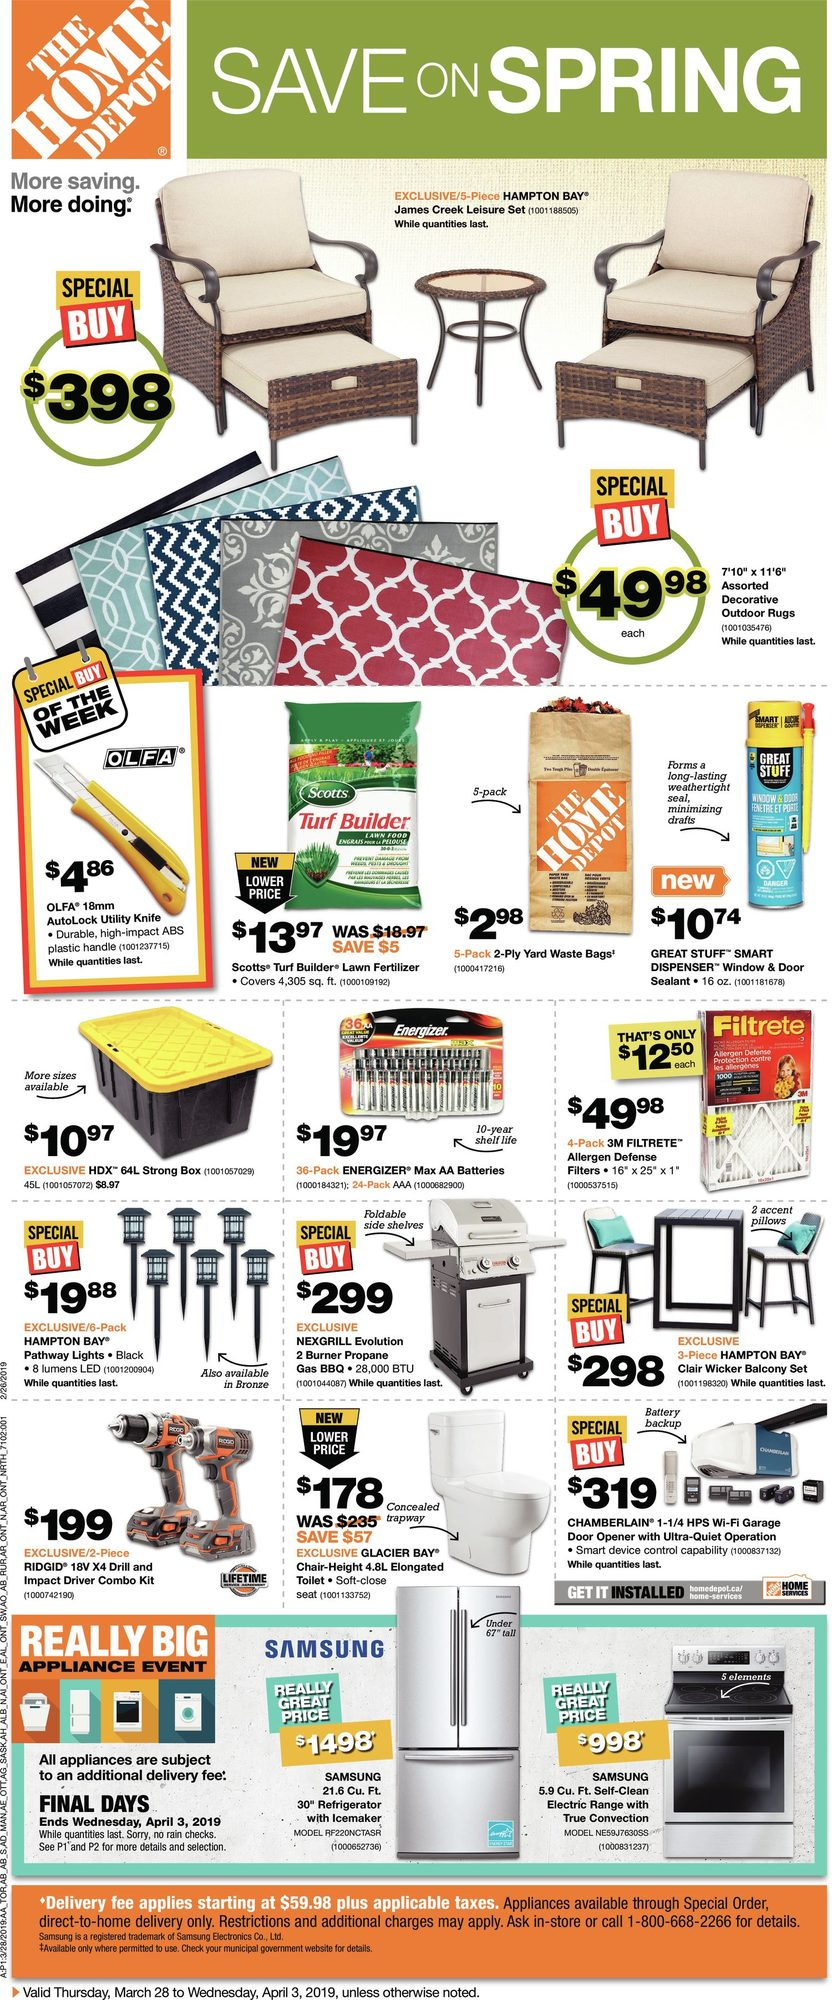 Weekly - Save on Spring - Home Depot March 28 2019 | YP Shopwise